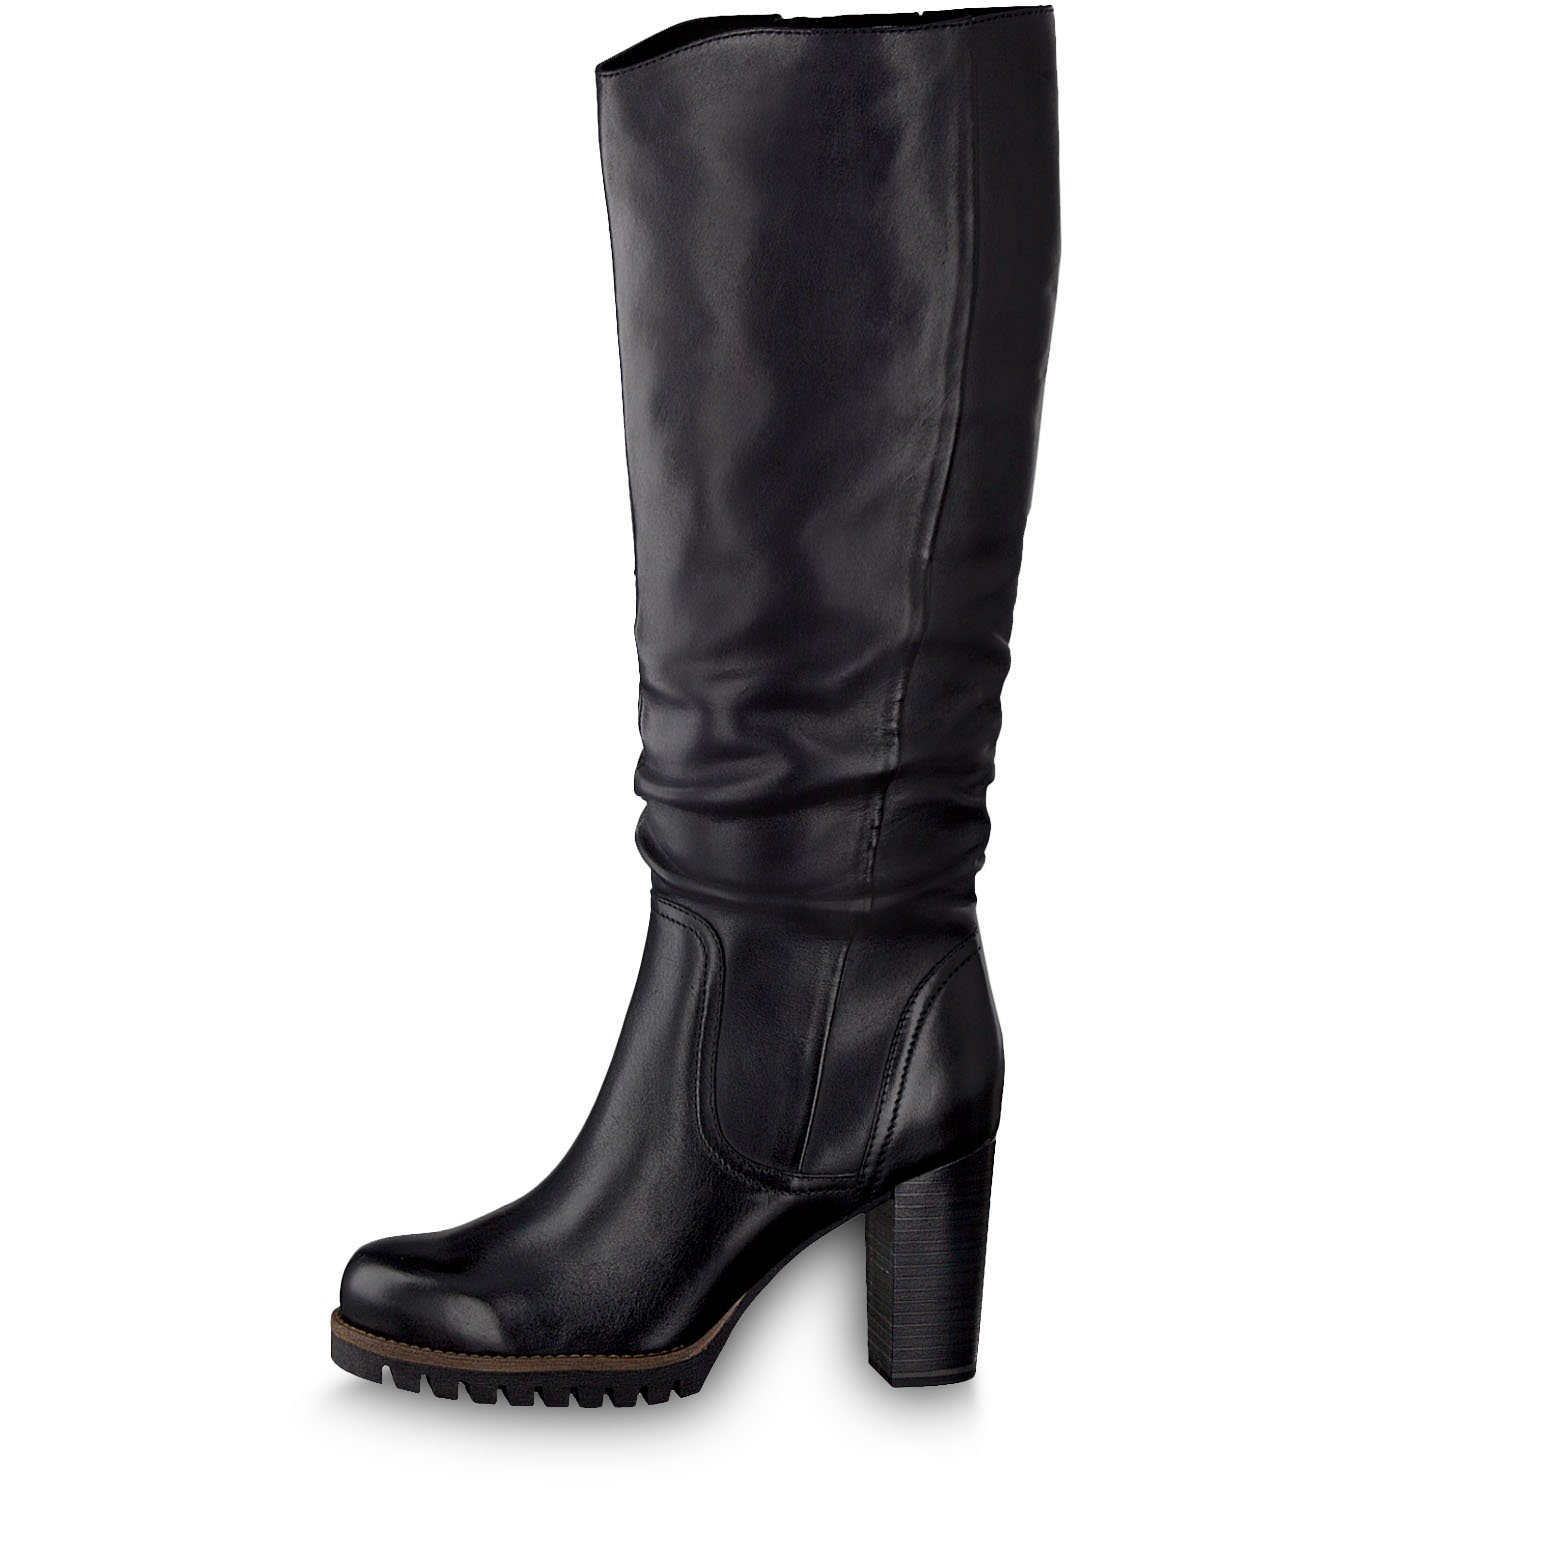 Leather Boots - black, BLACK ANTIC, hi-res